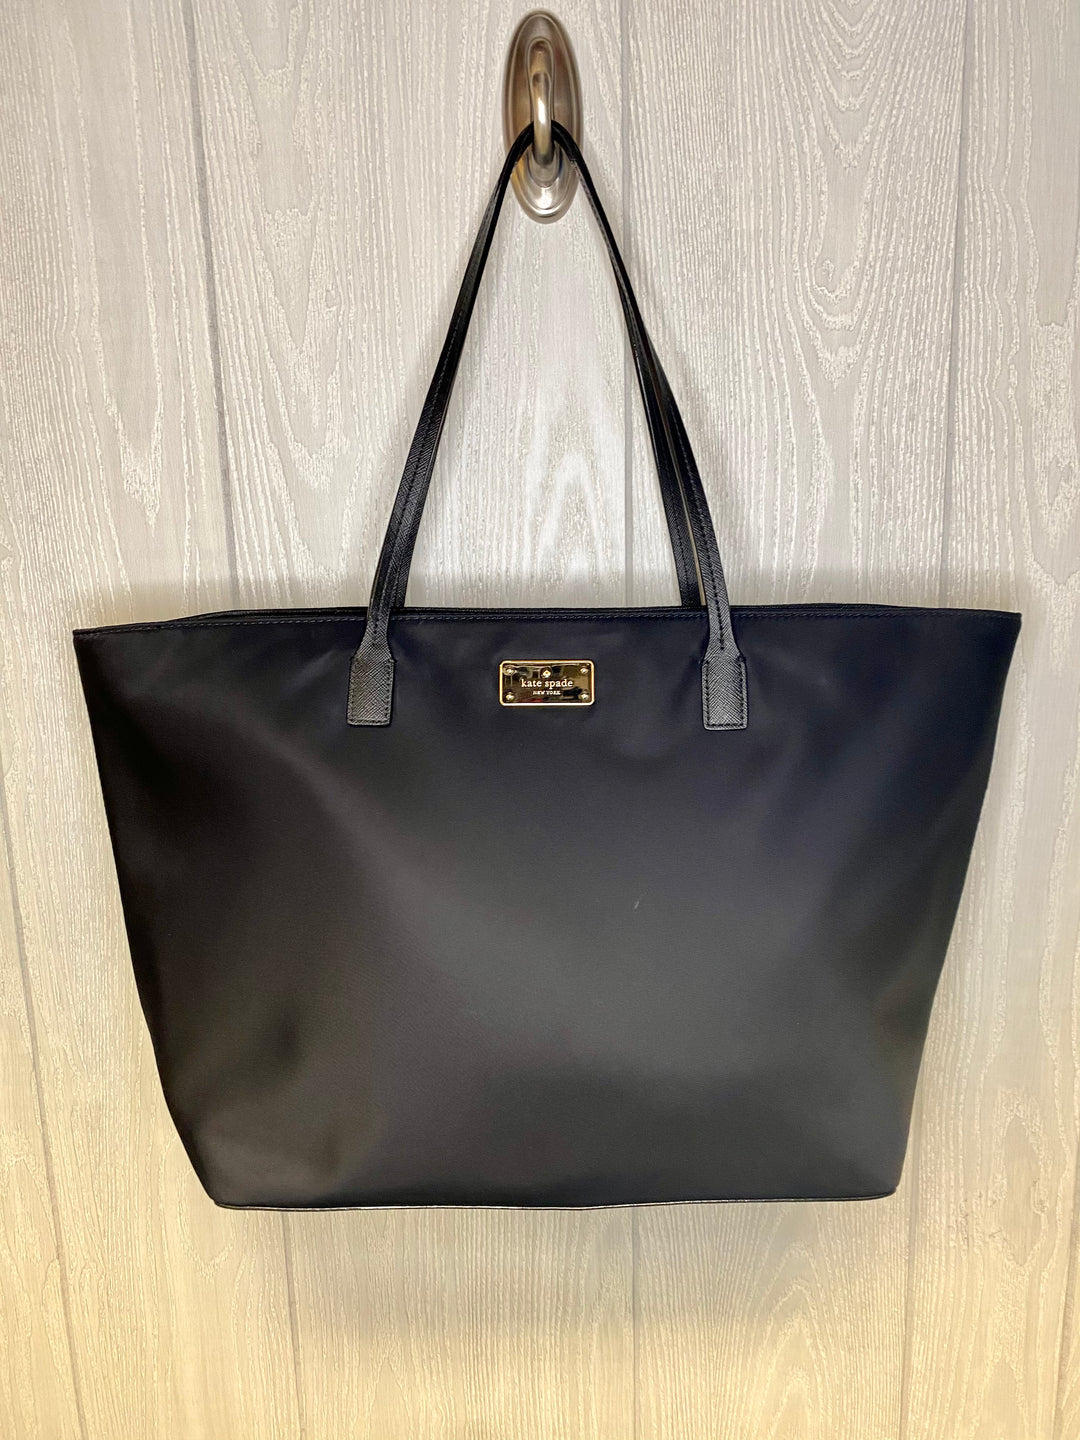 Photo #1 - BRAND: KATE SPADE <BR>STYLE: HANDBAG DESIGNER <BR>COLOR: BLACK <BR>SIZE: MEDIUM <BR>OTHER INFO: BLAKE AVENUE MARGARETA  NO RETURNS <BR>SKU: 245-245202-178